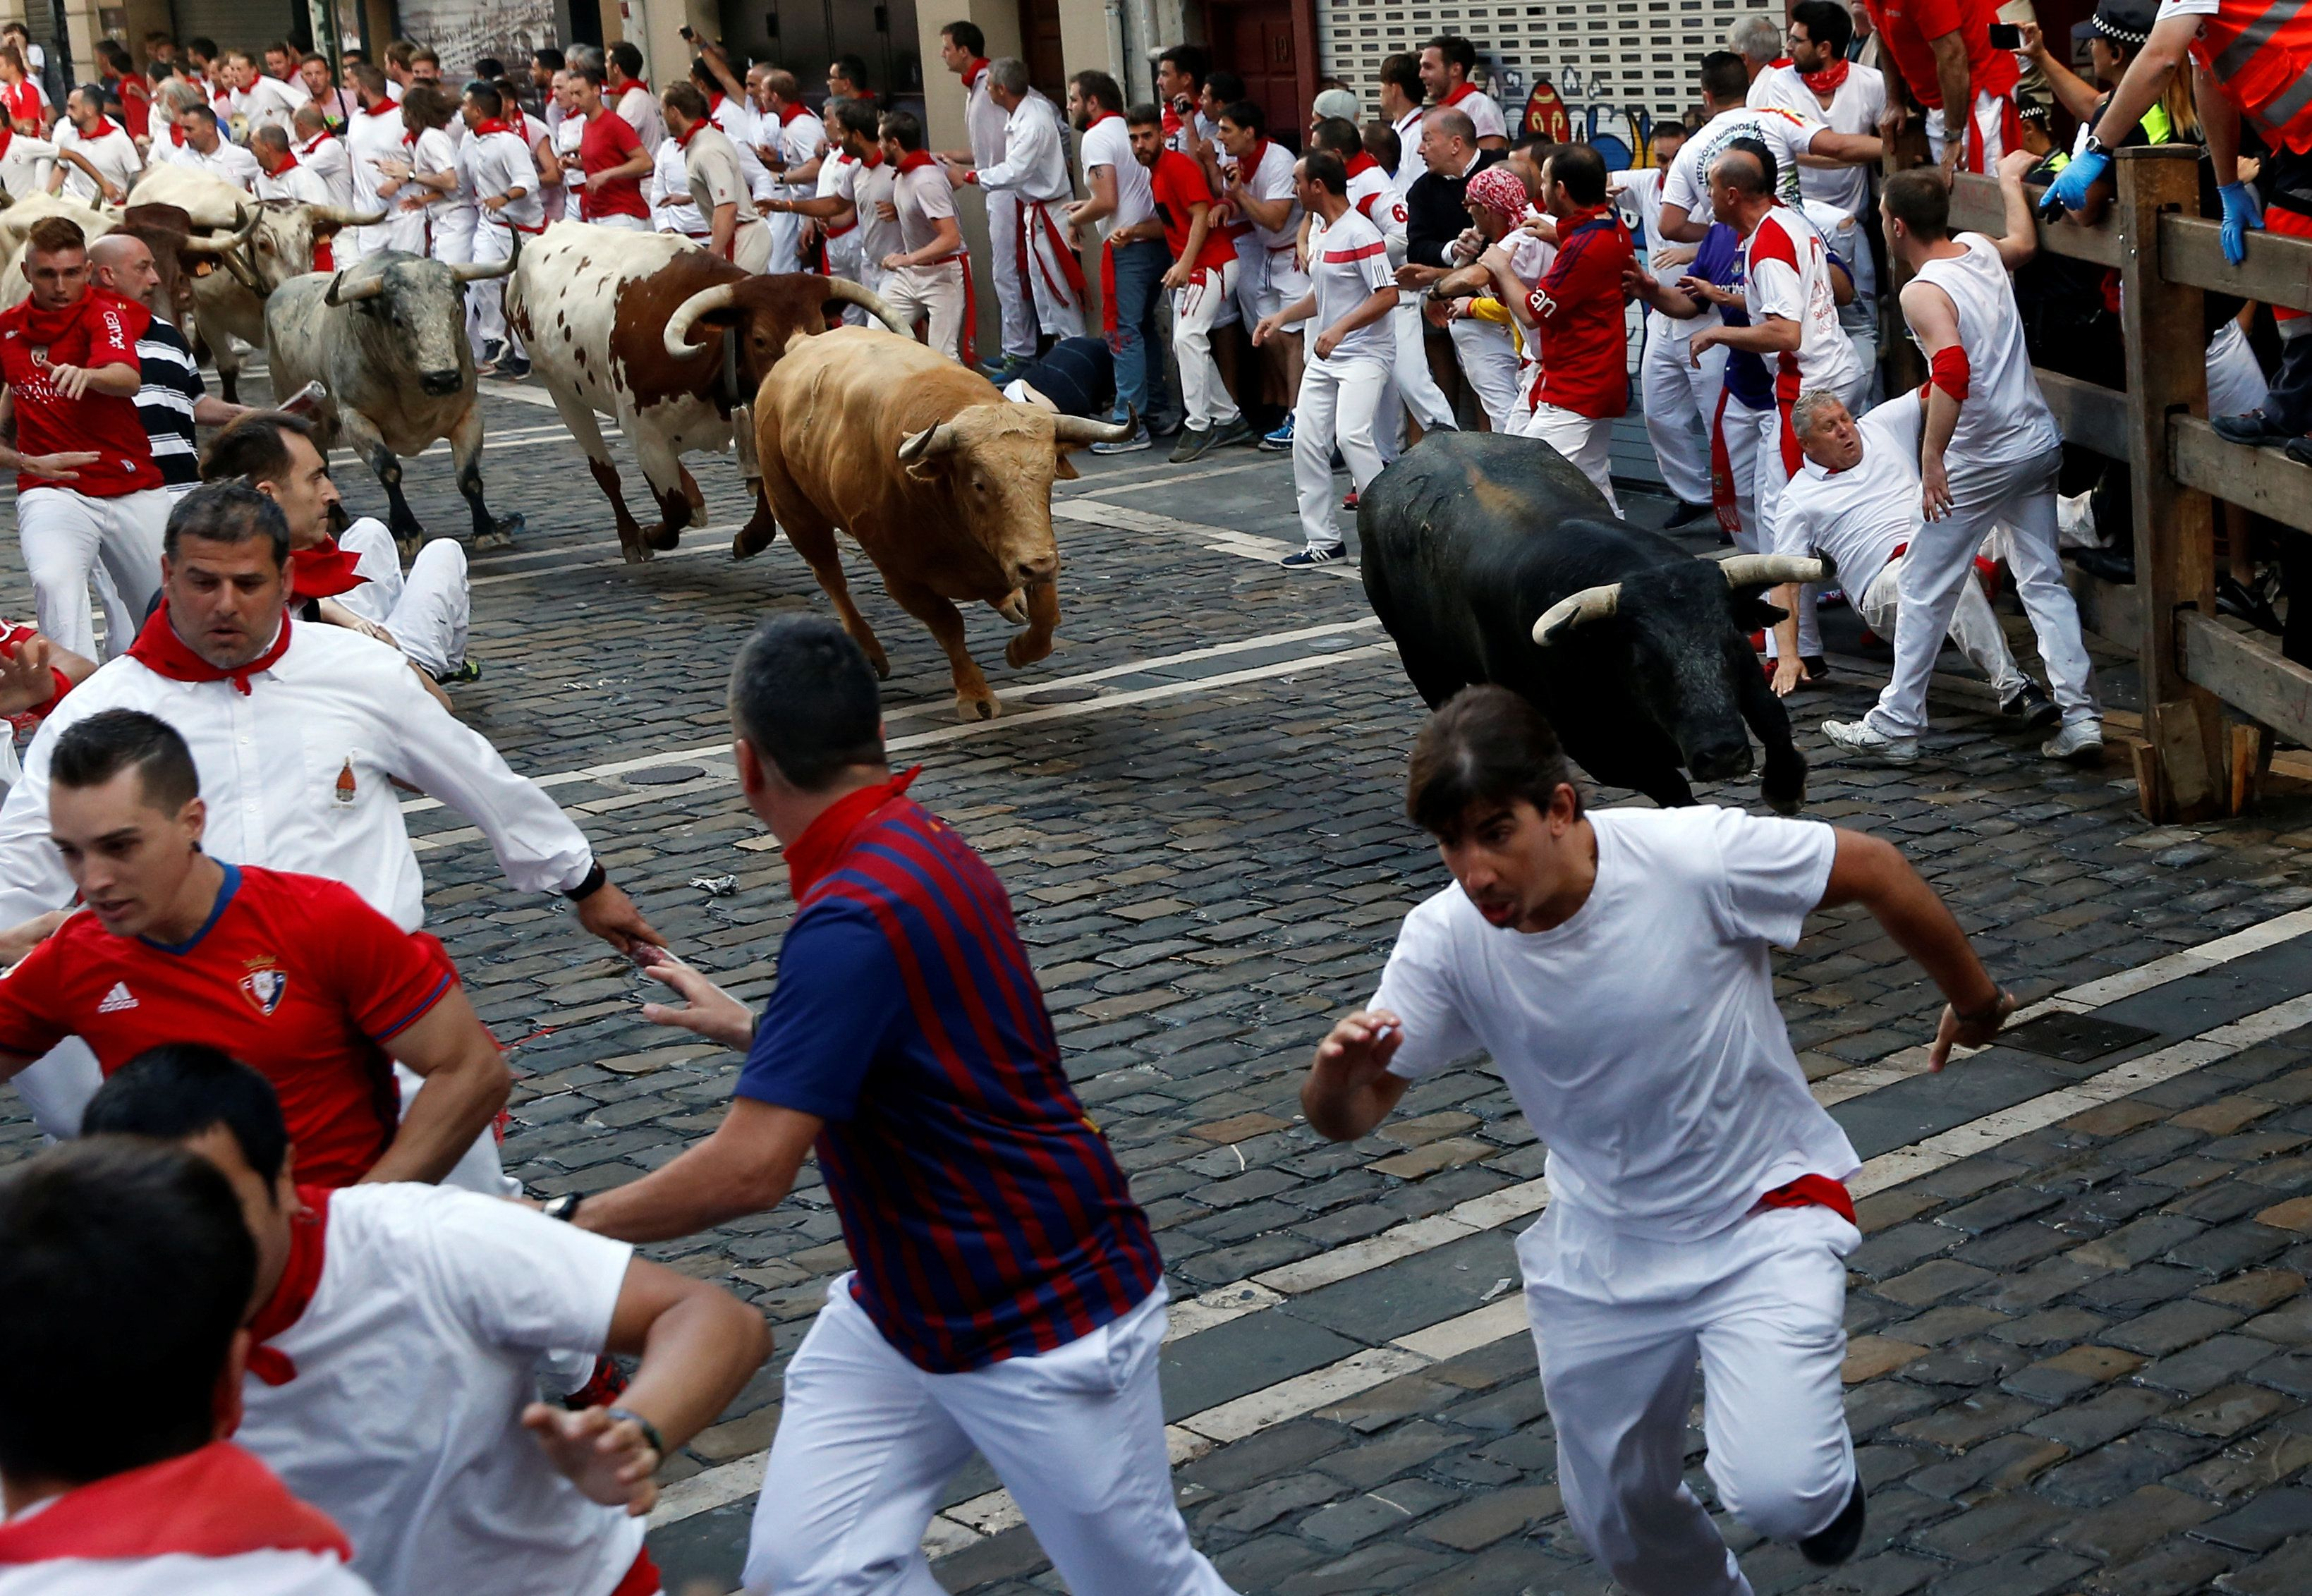 Runners sprint ahead of bulls during the first running of the bulls at the San Fermin festival in Pamplona, northern Spain, July 7, 2017. REUTERS/Susana Vera